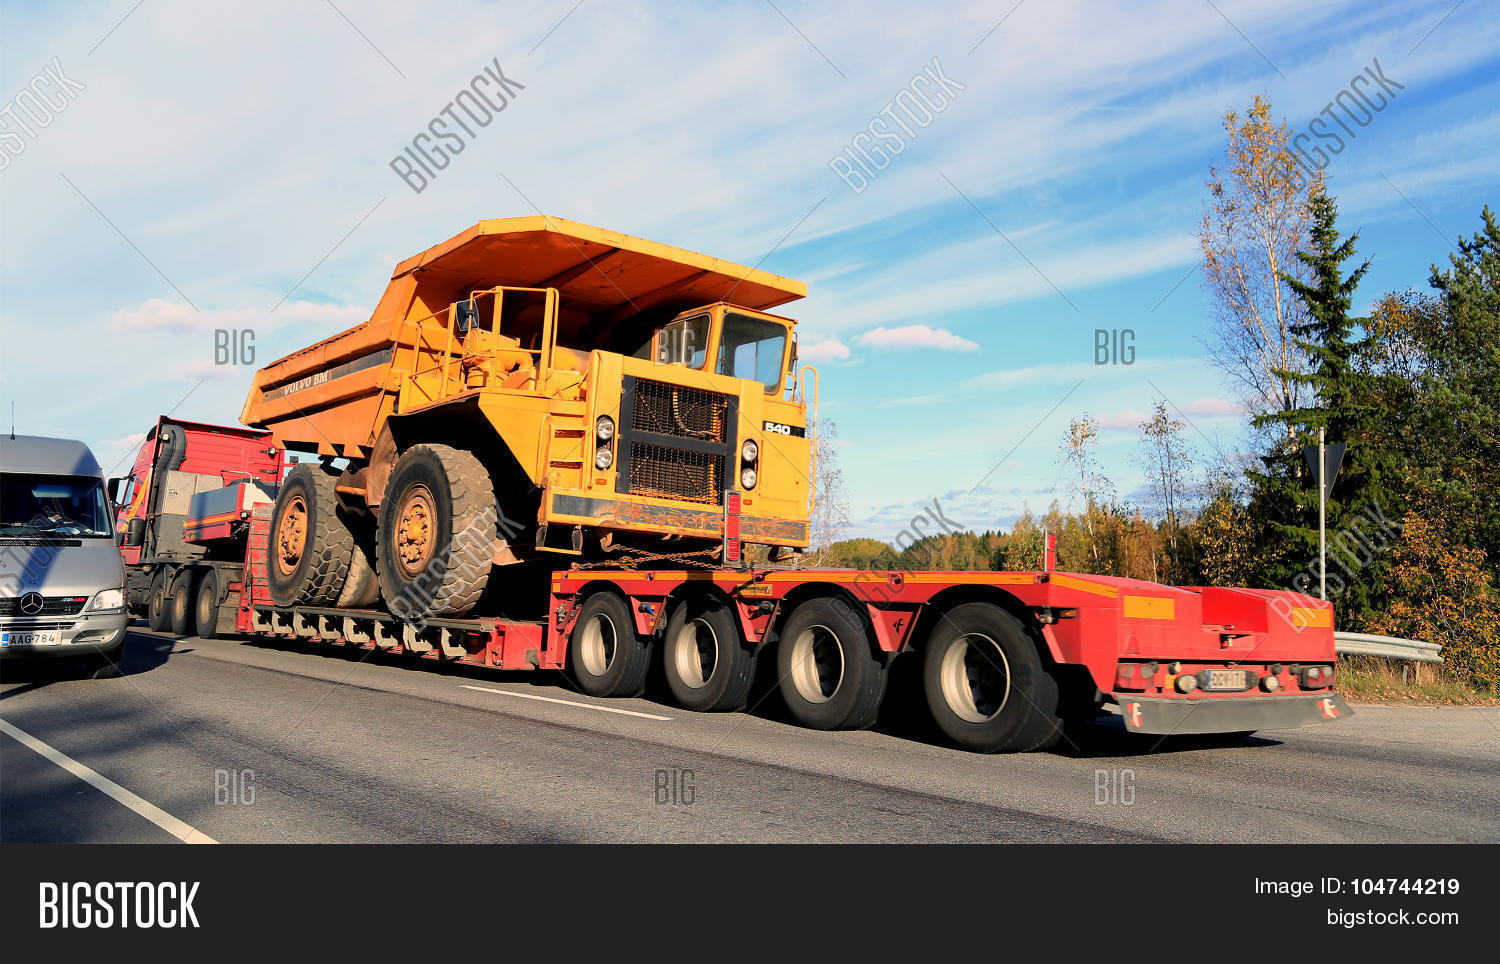 hight resolution of parainen finland october 9 2015 volvo fh hauls a volvo bm 540 rigid dump truck as wide load the bm 540 was designed a cost effective load carrier for